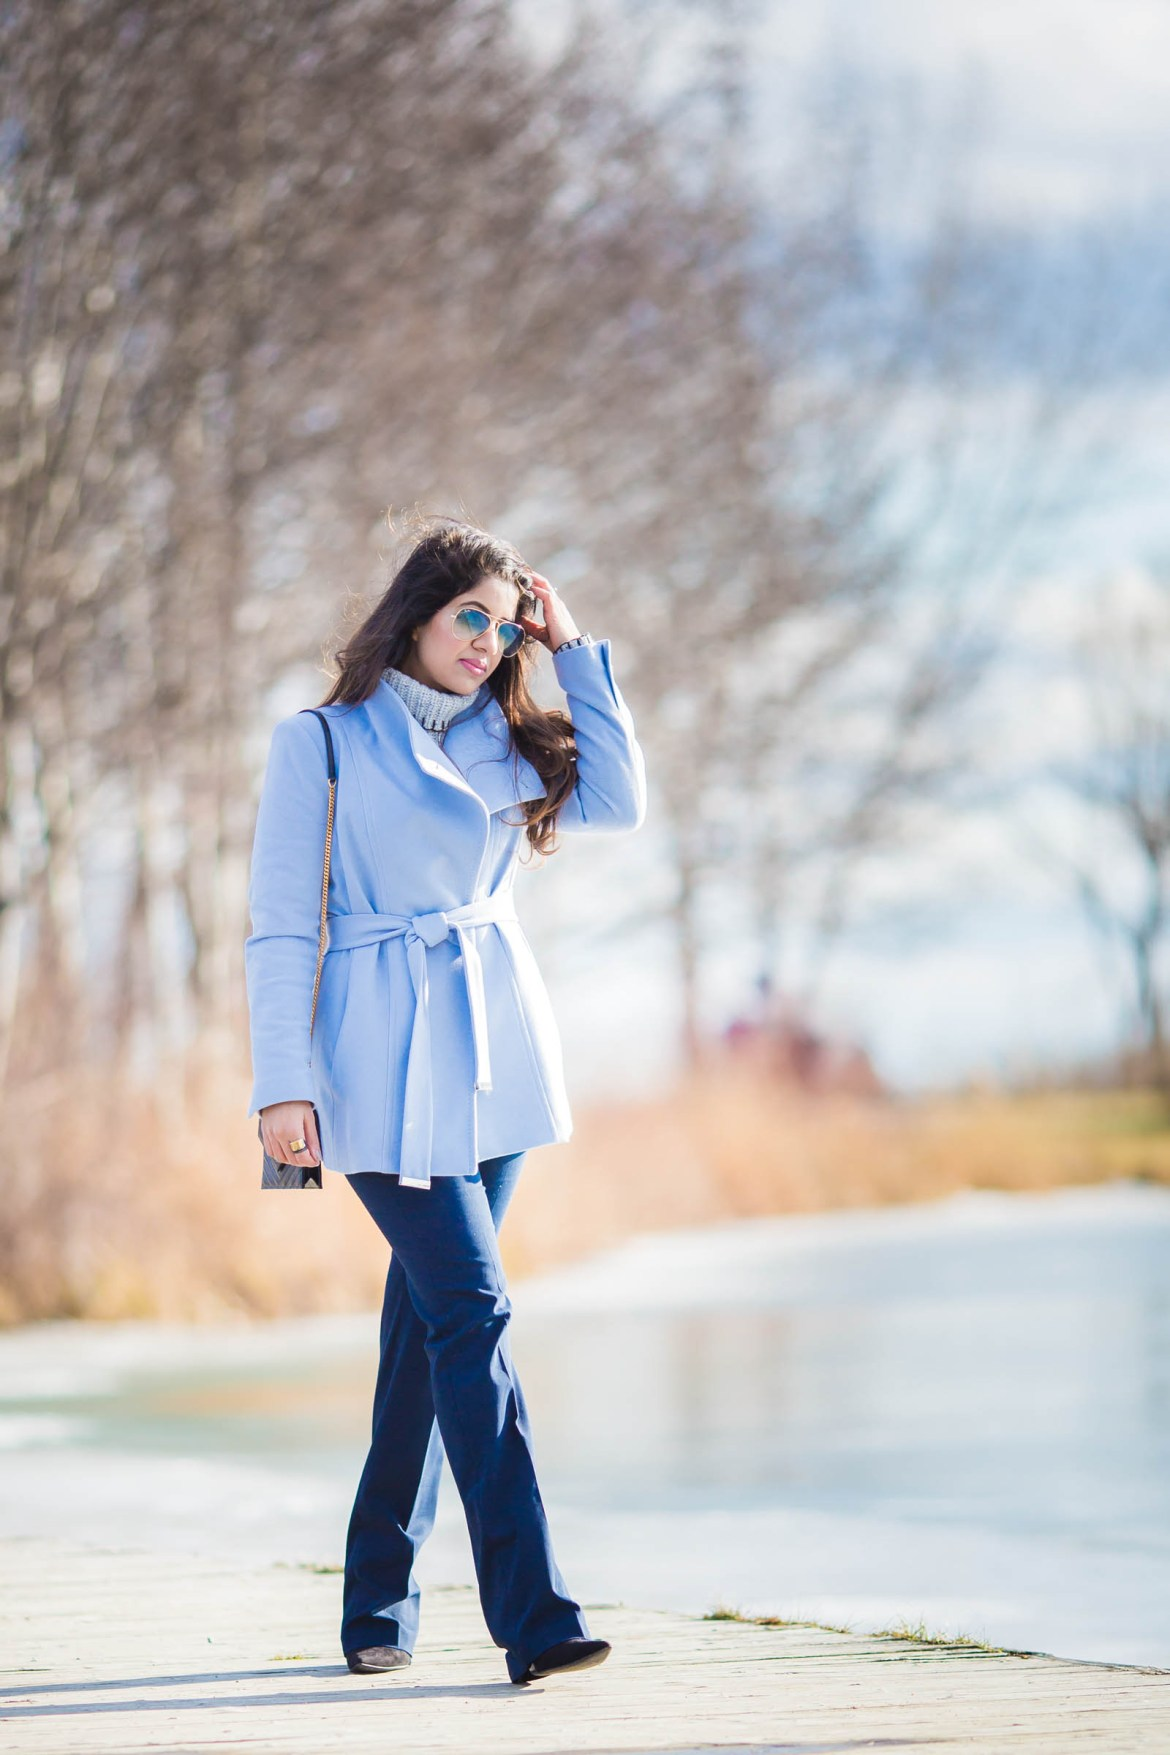 sky-blue-pea-coat-ted-baker-ysl-zara-wide-leg-pants-ray-ben-cold-spring-fashion-blogger-stylist-5